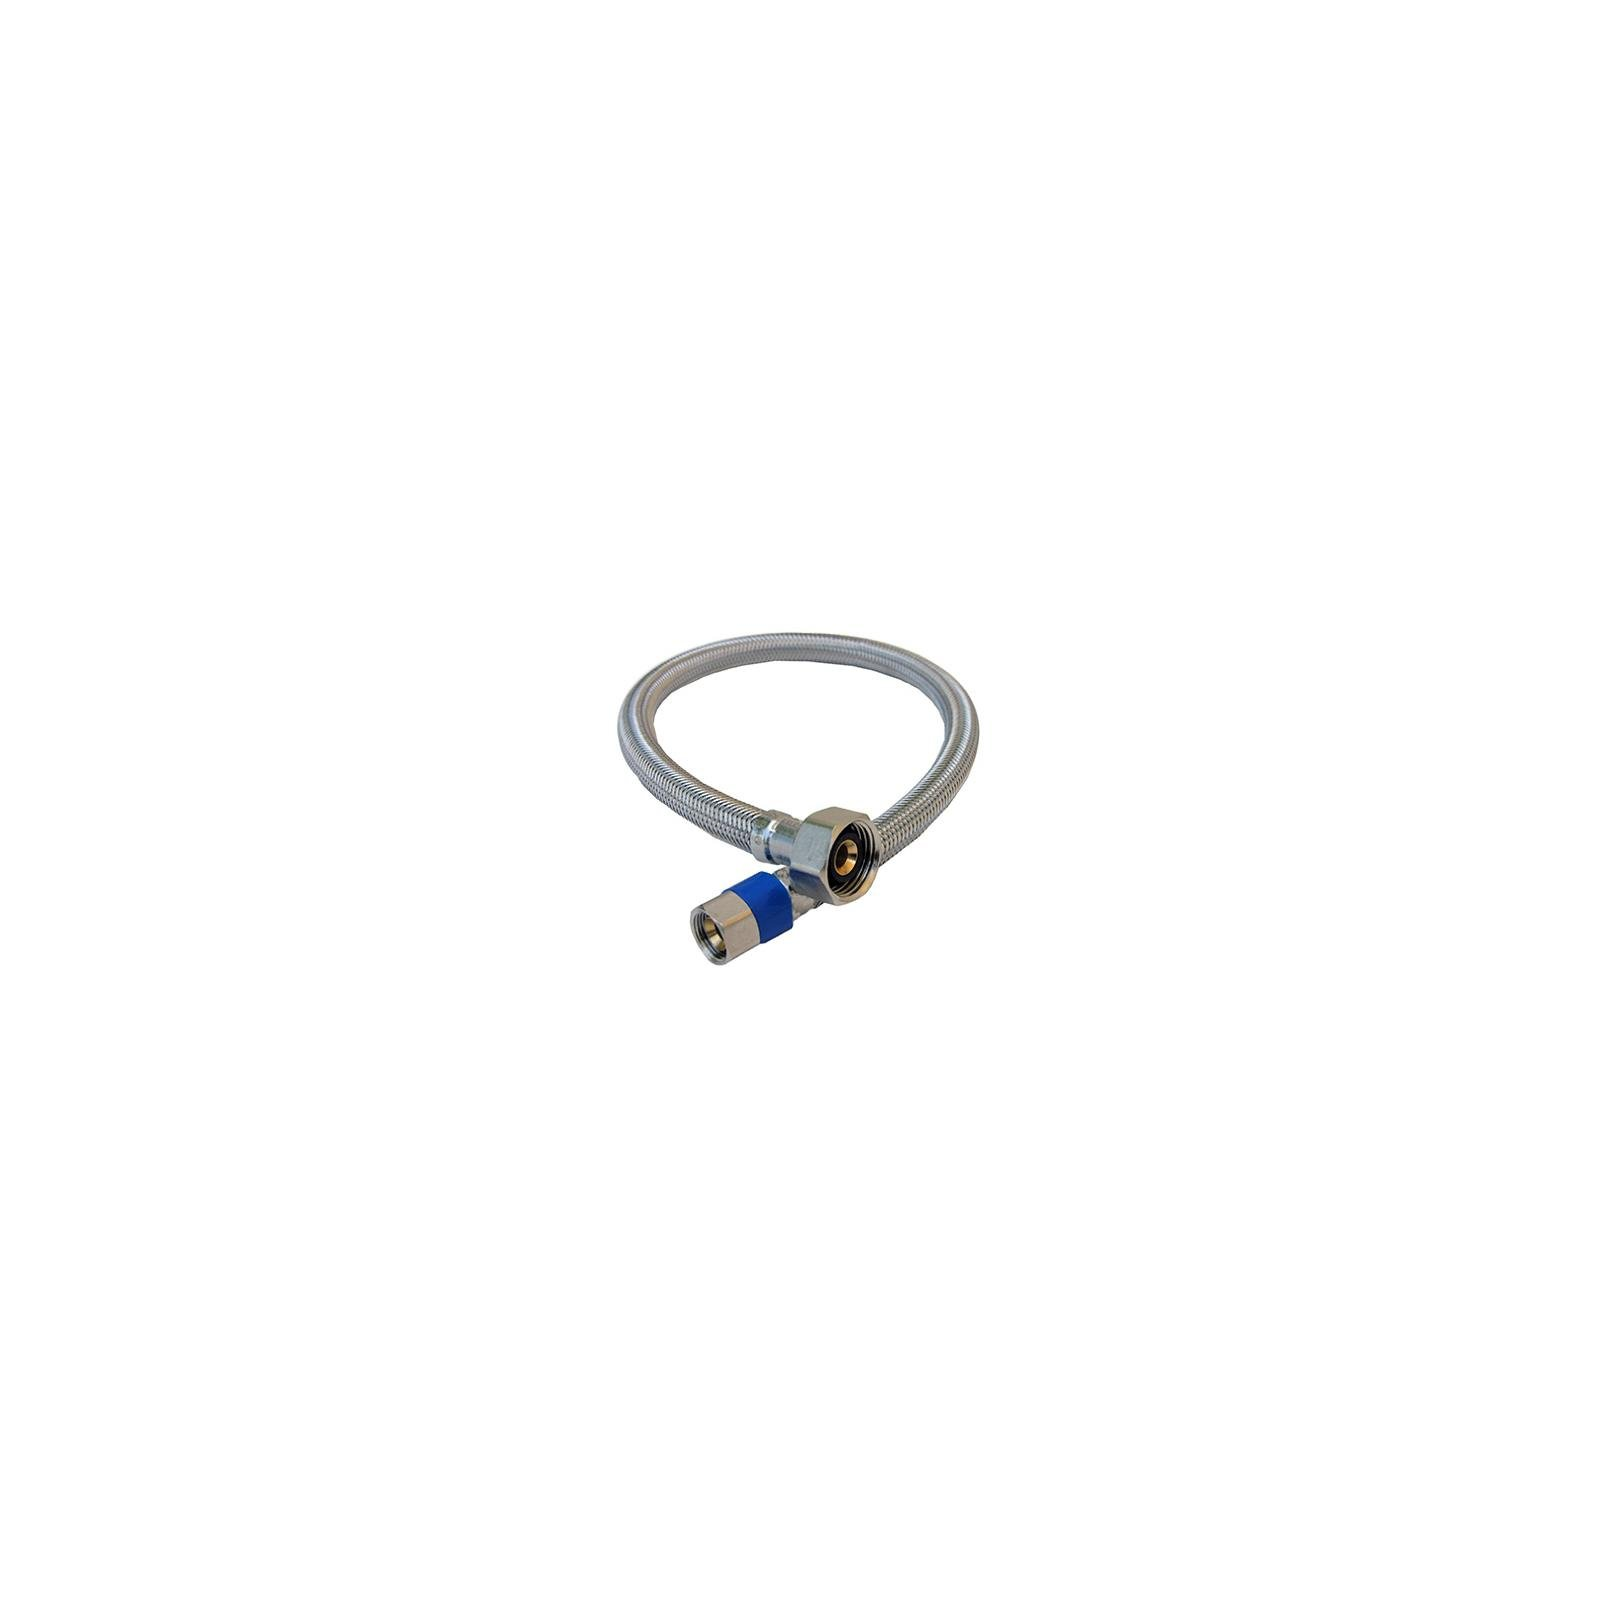 Larsen Supply 10-0117 Faucet Connector, Stainless-Steel, 3/8-In. Compression x 1/2-In. Female Iron Pipe x - Quantity 10